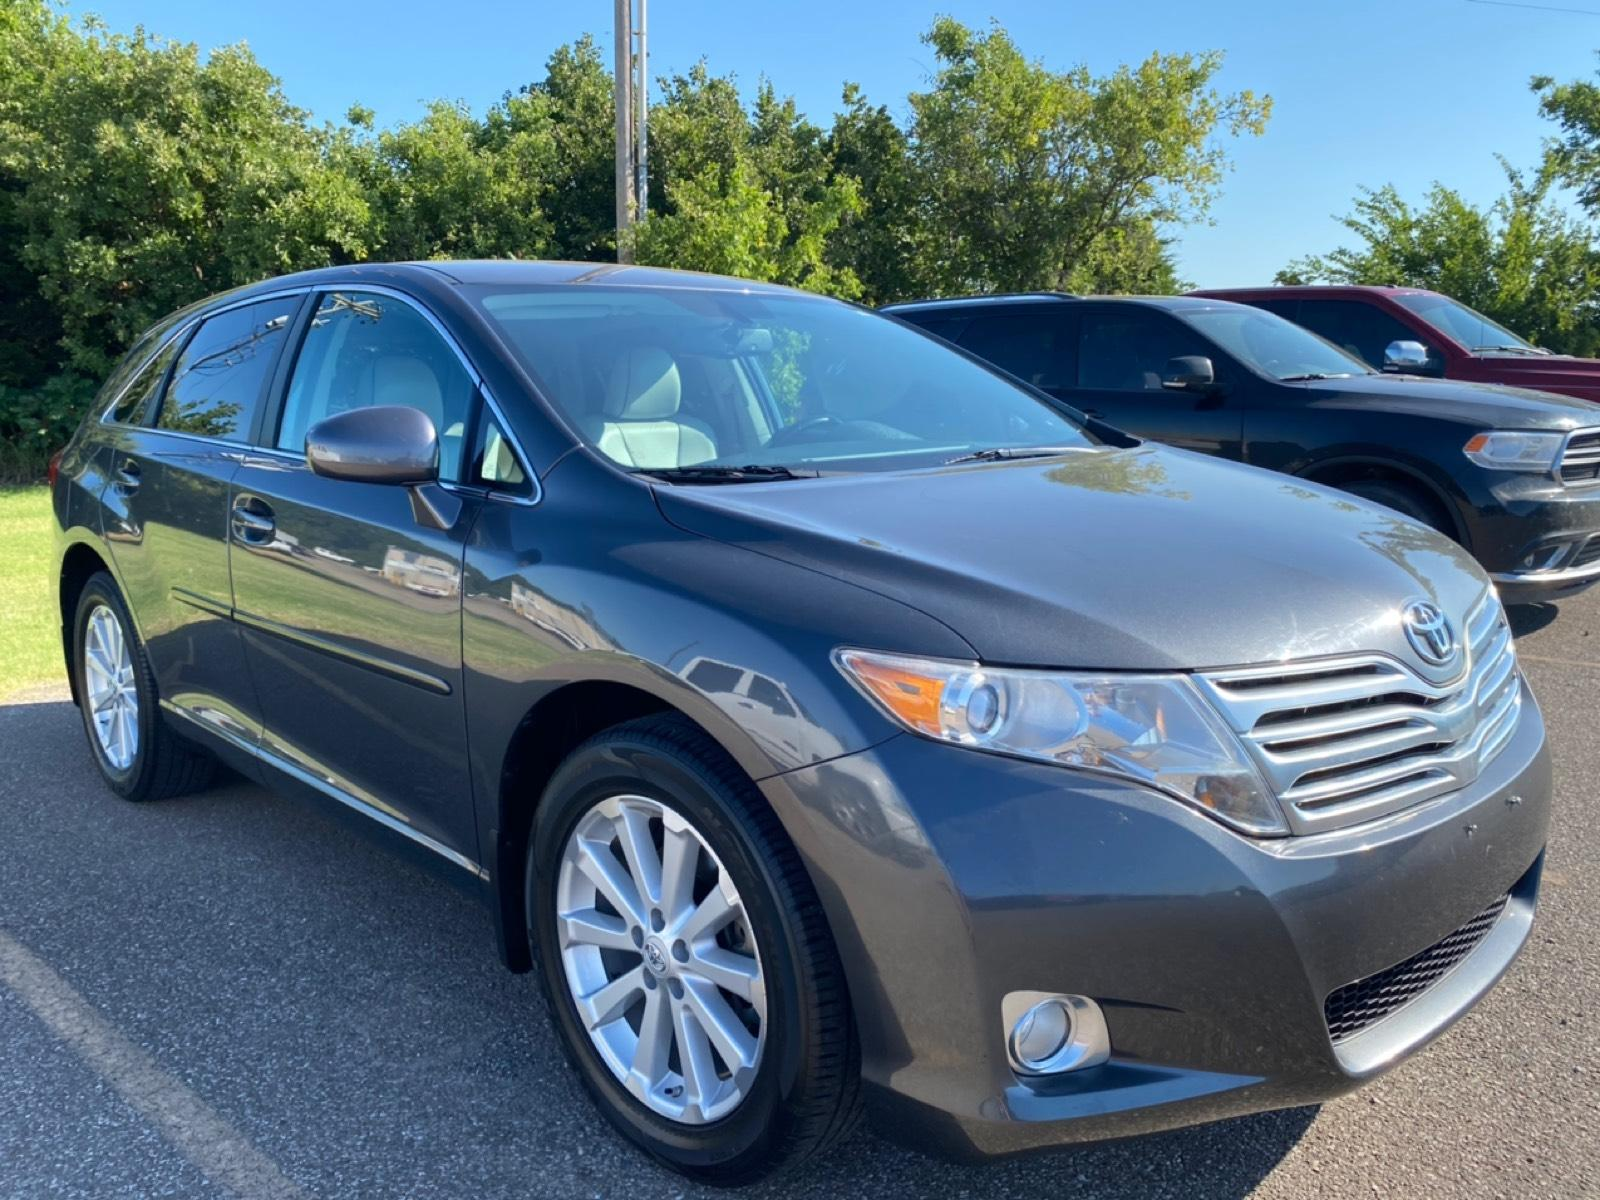 Pre-Owned 2009 Toyota Venza 4dr Wgn I4 FWD